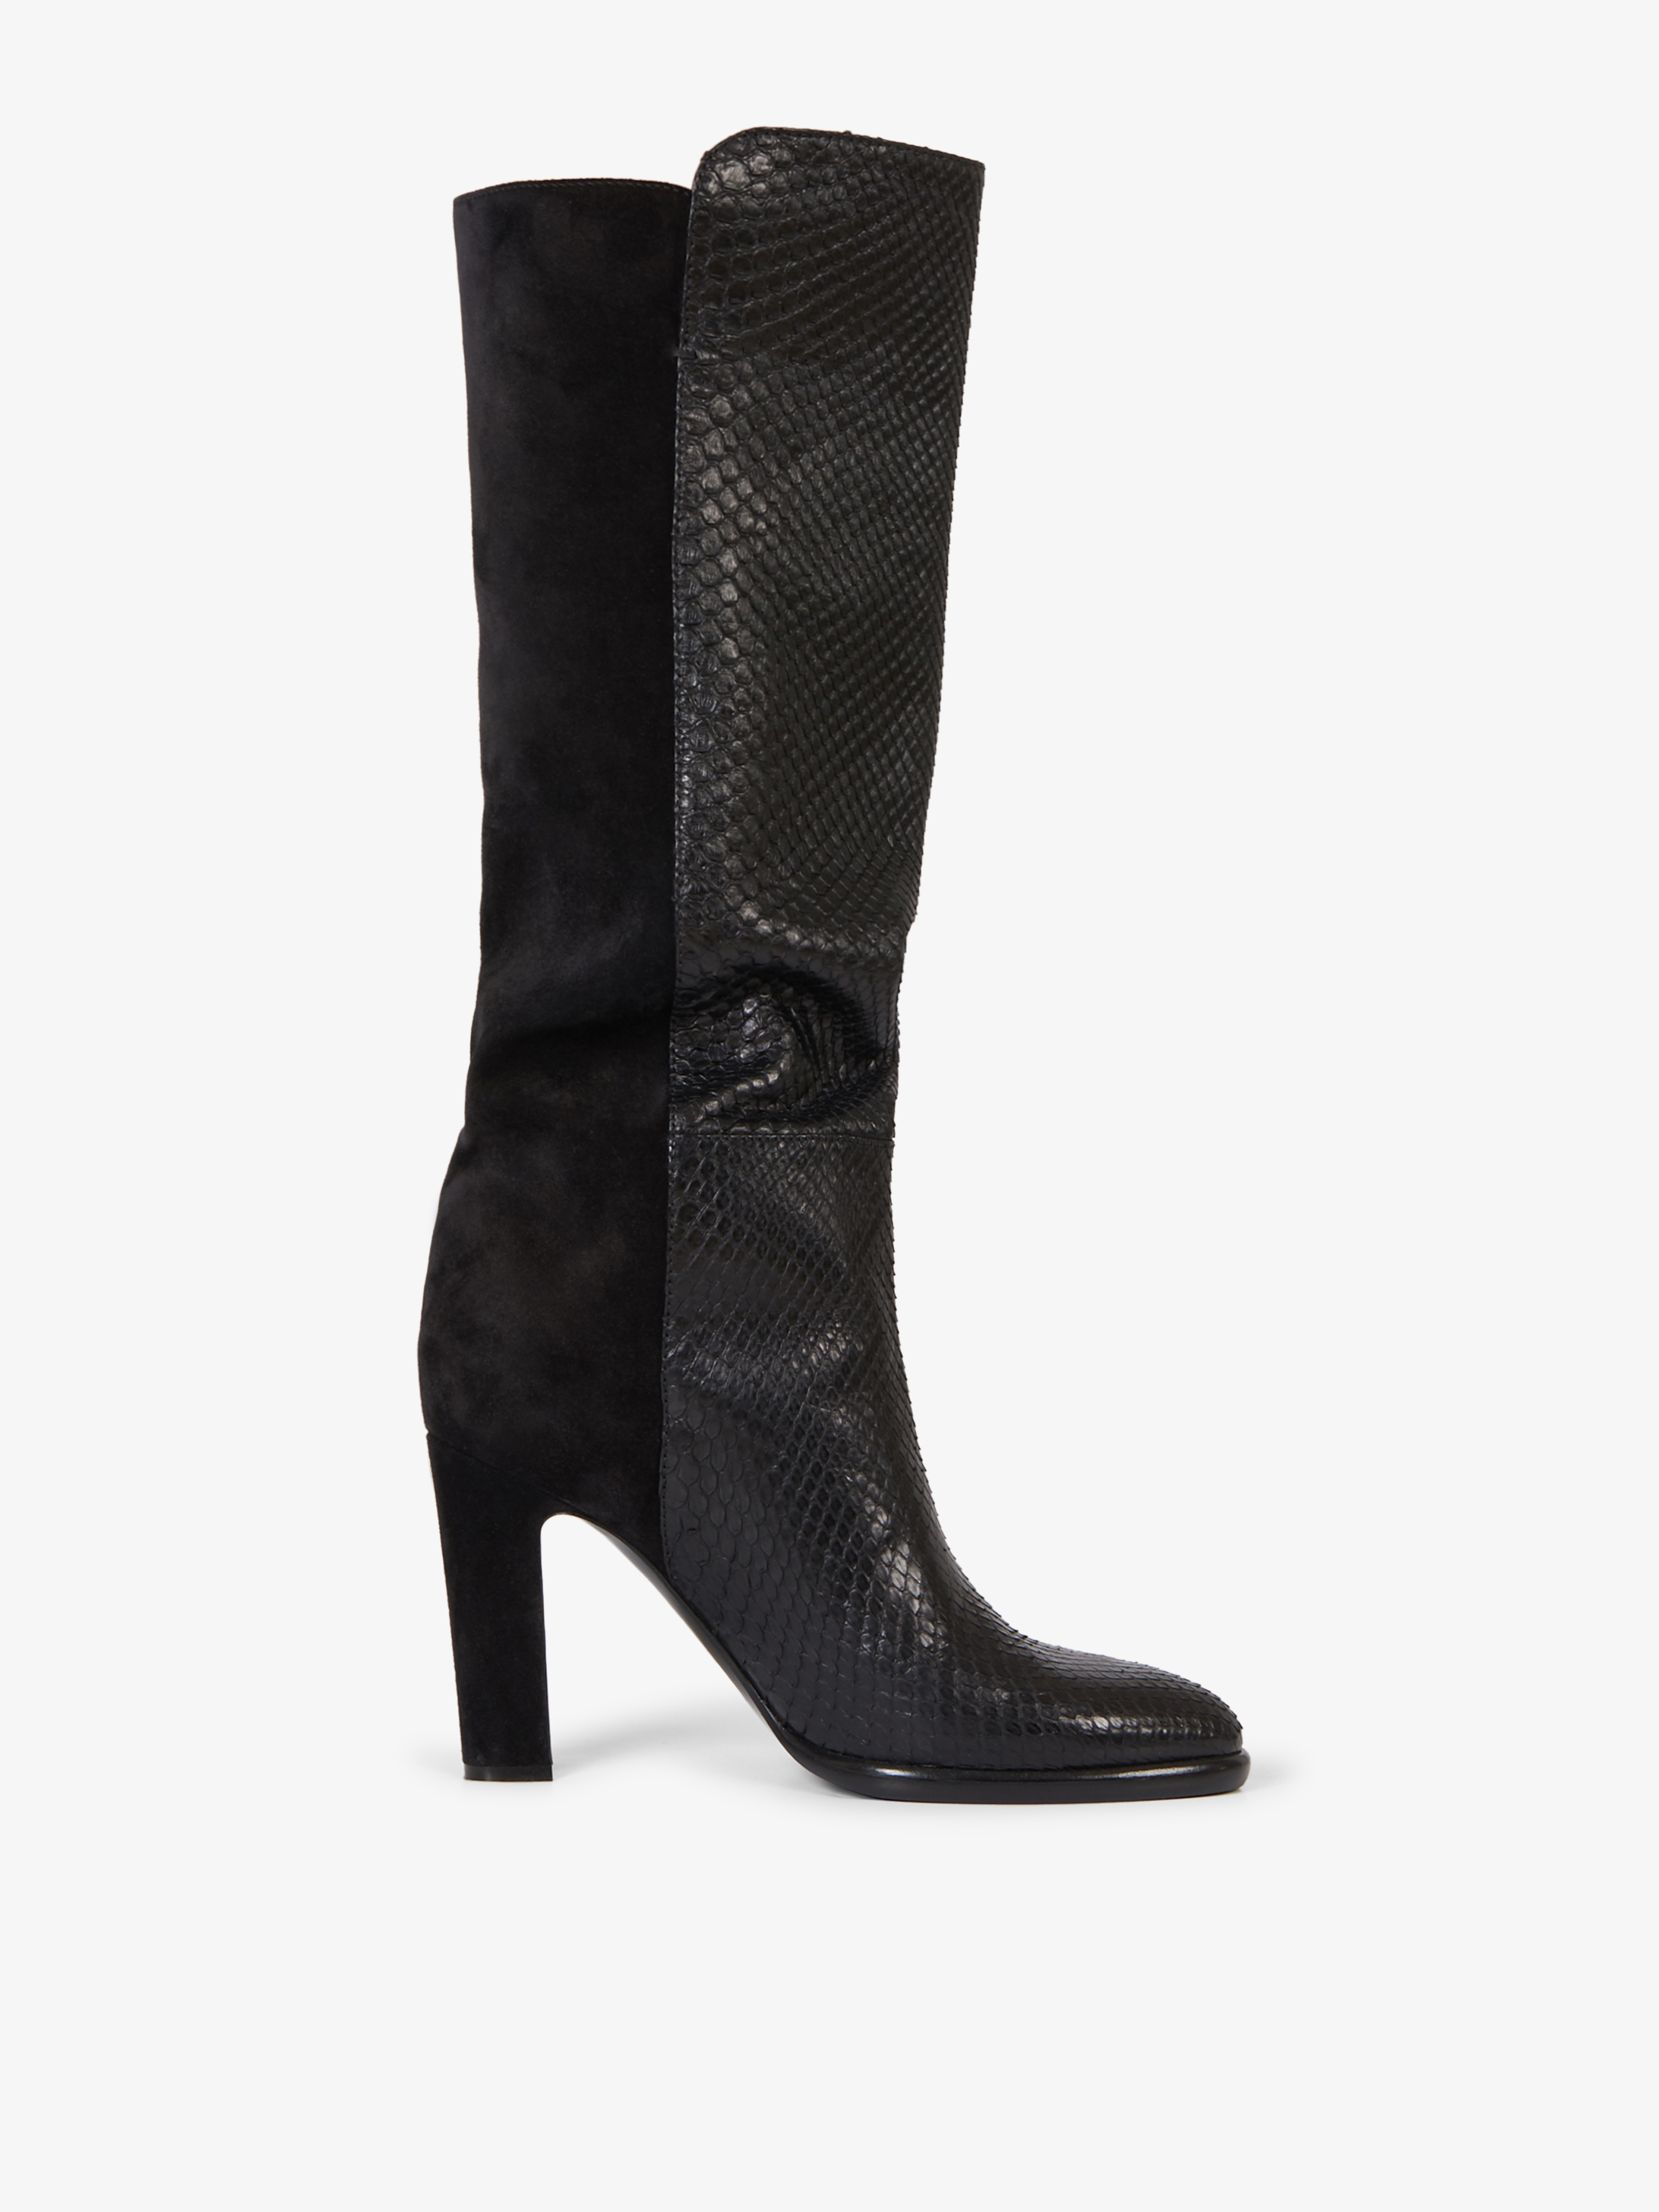 Mayfair boots in python skin and suede